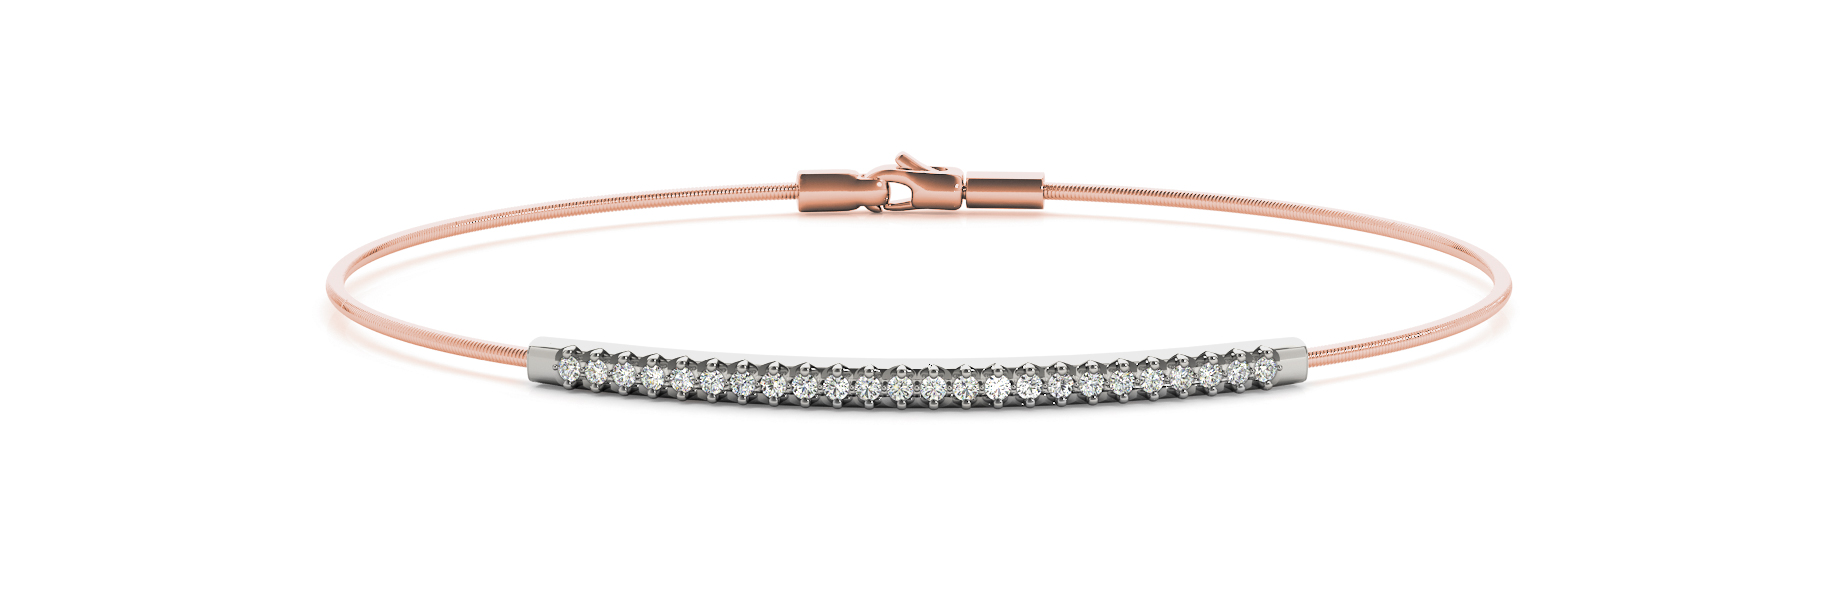 Petite Diamond Bracelet with Filigree  in Rose & White Gold